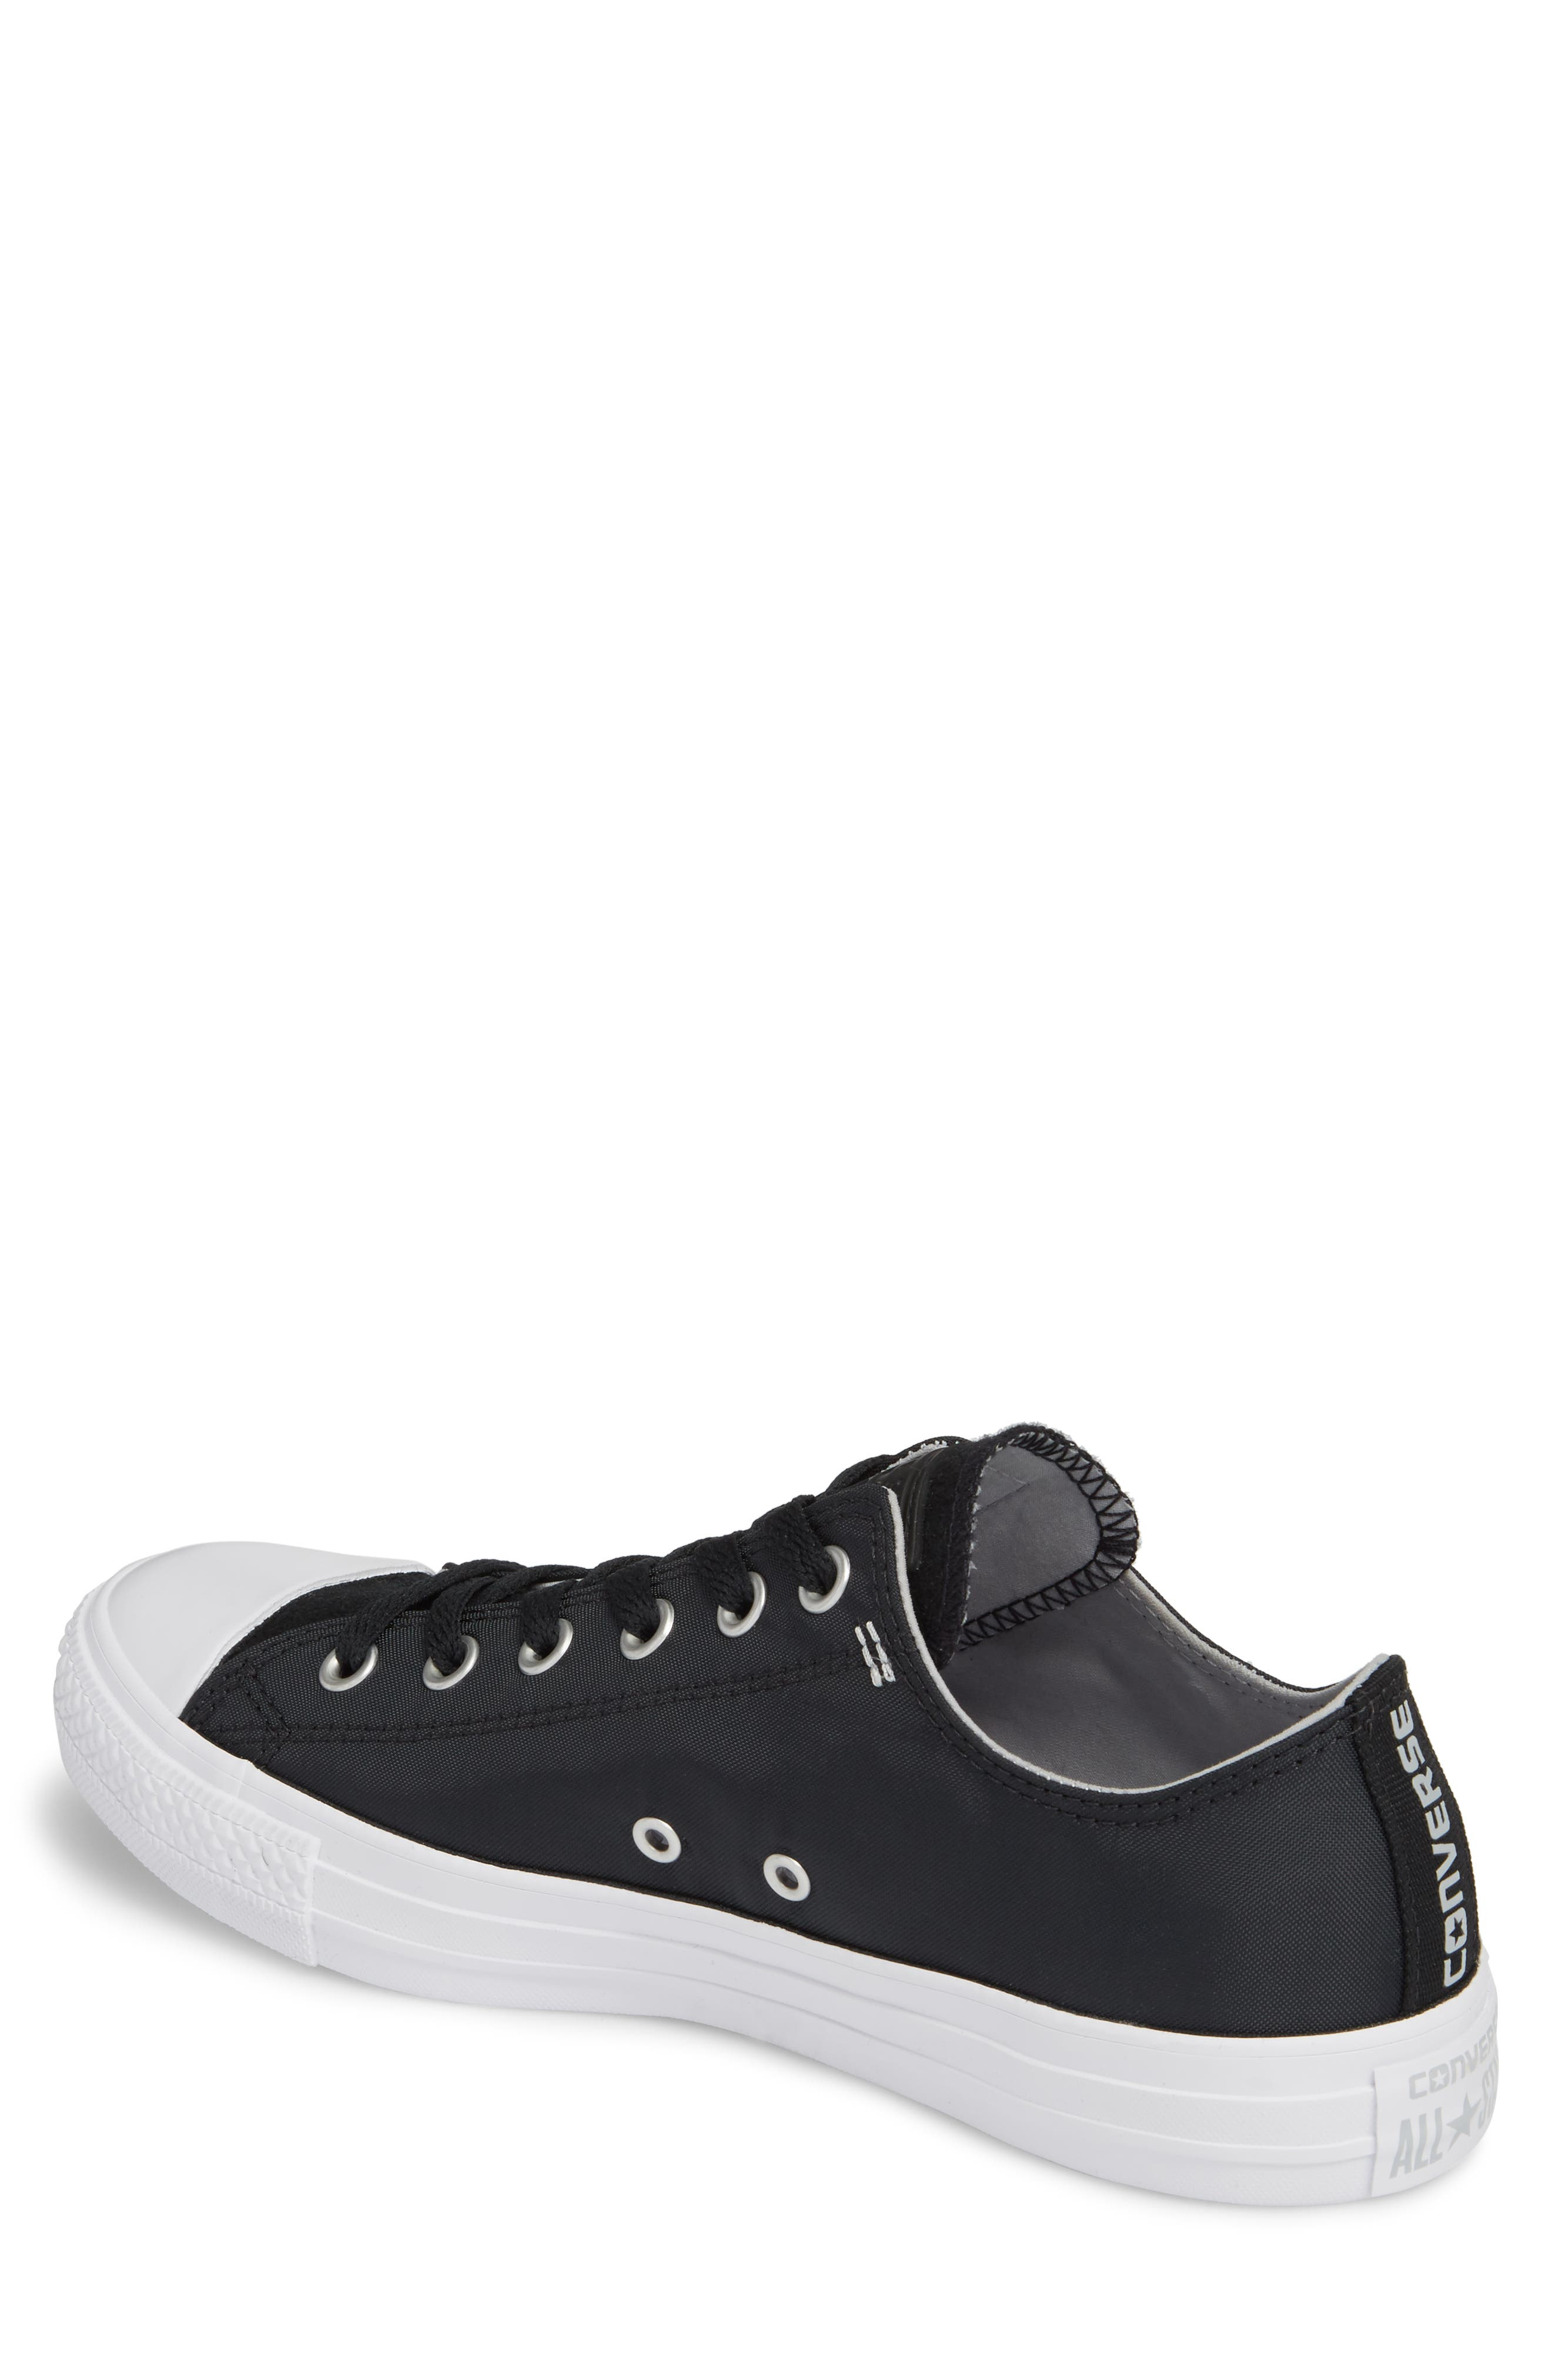 All Star<sup>®</sup> OX Low Top Sneaker,                             Alternate thumbnail 2, color,                             001